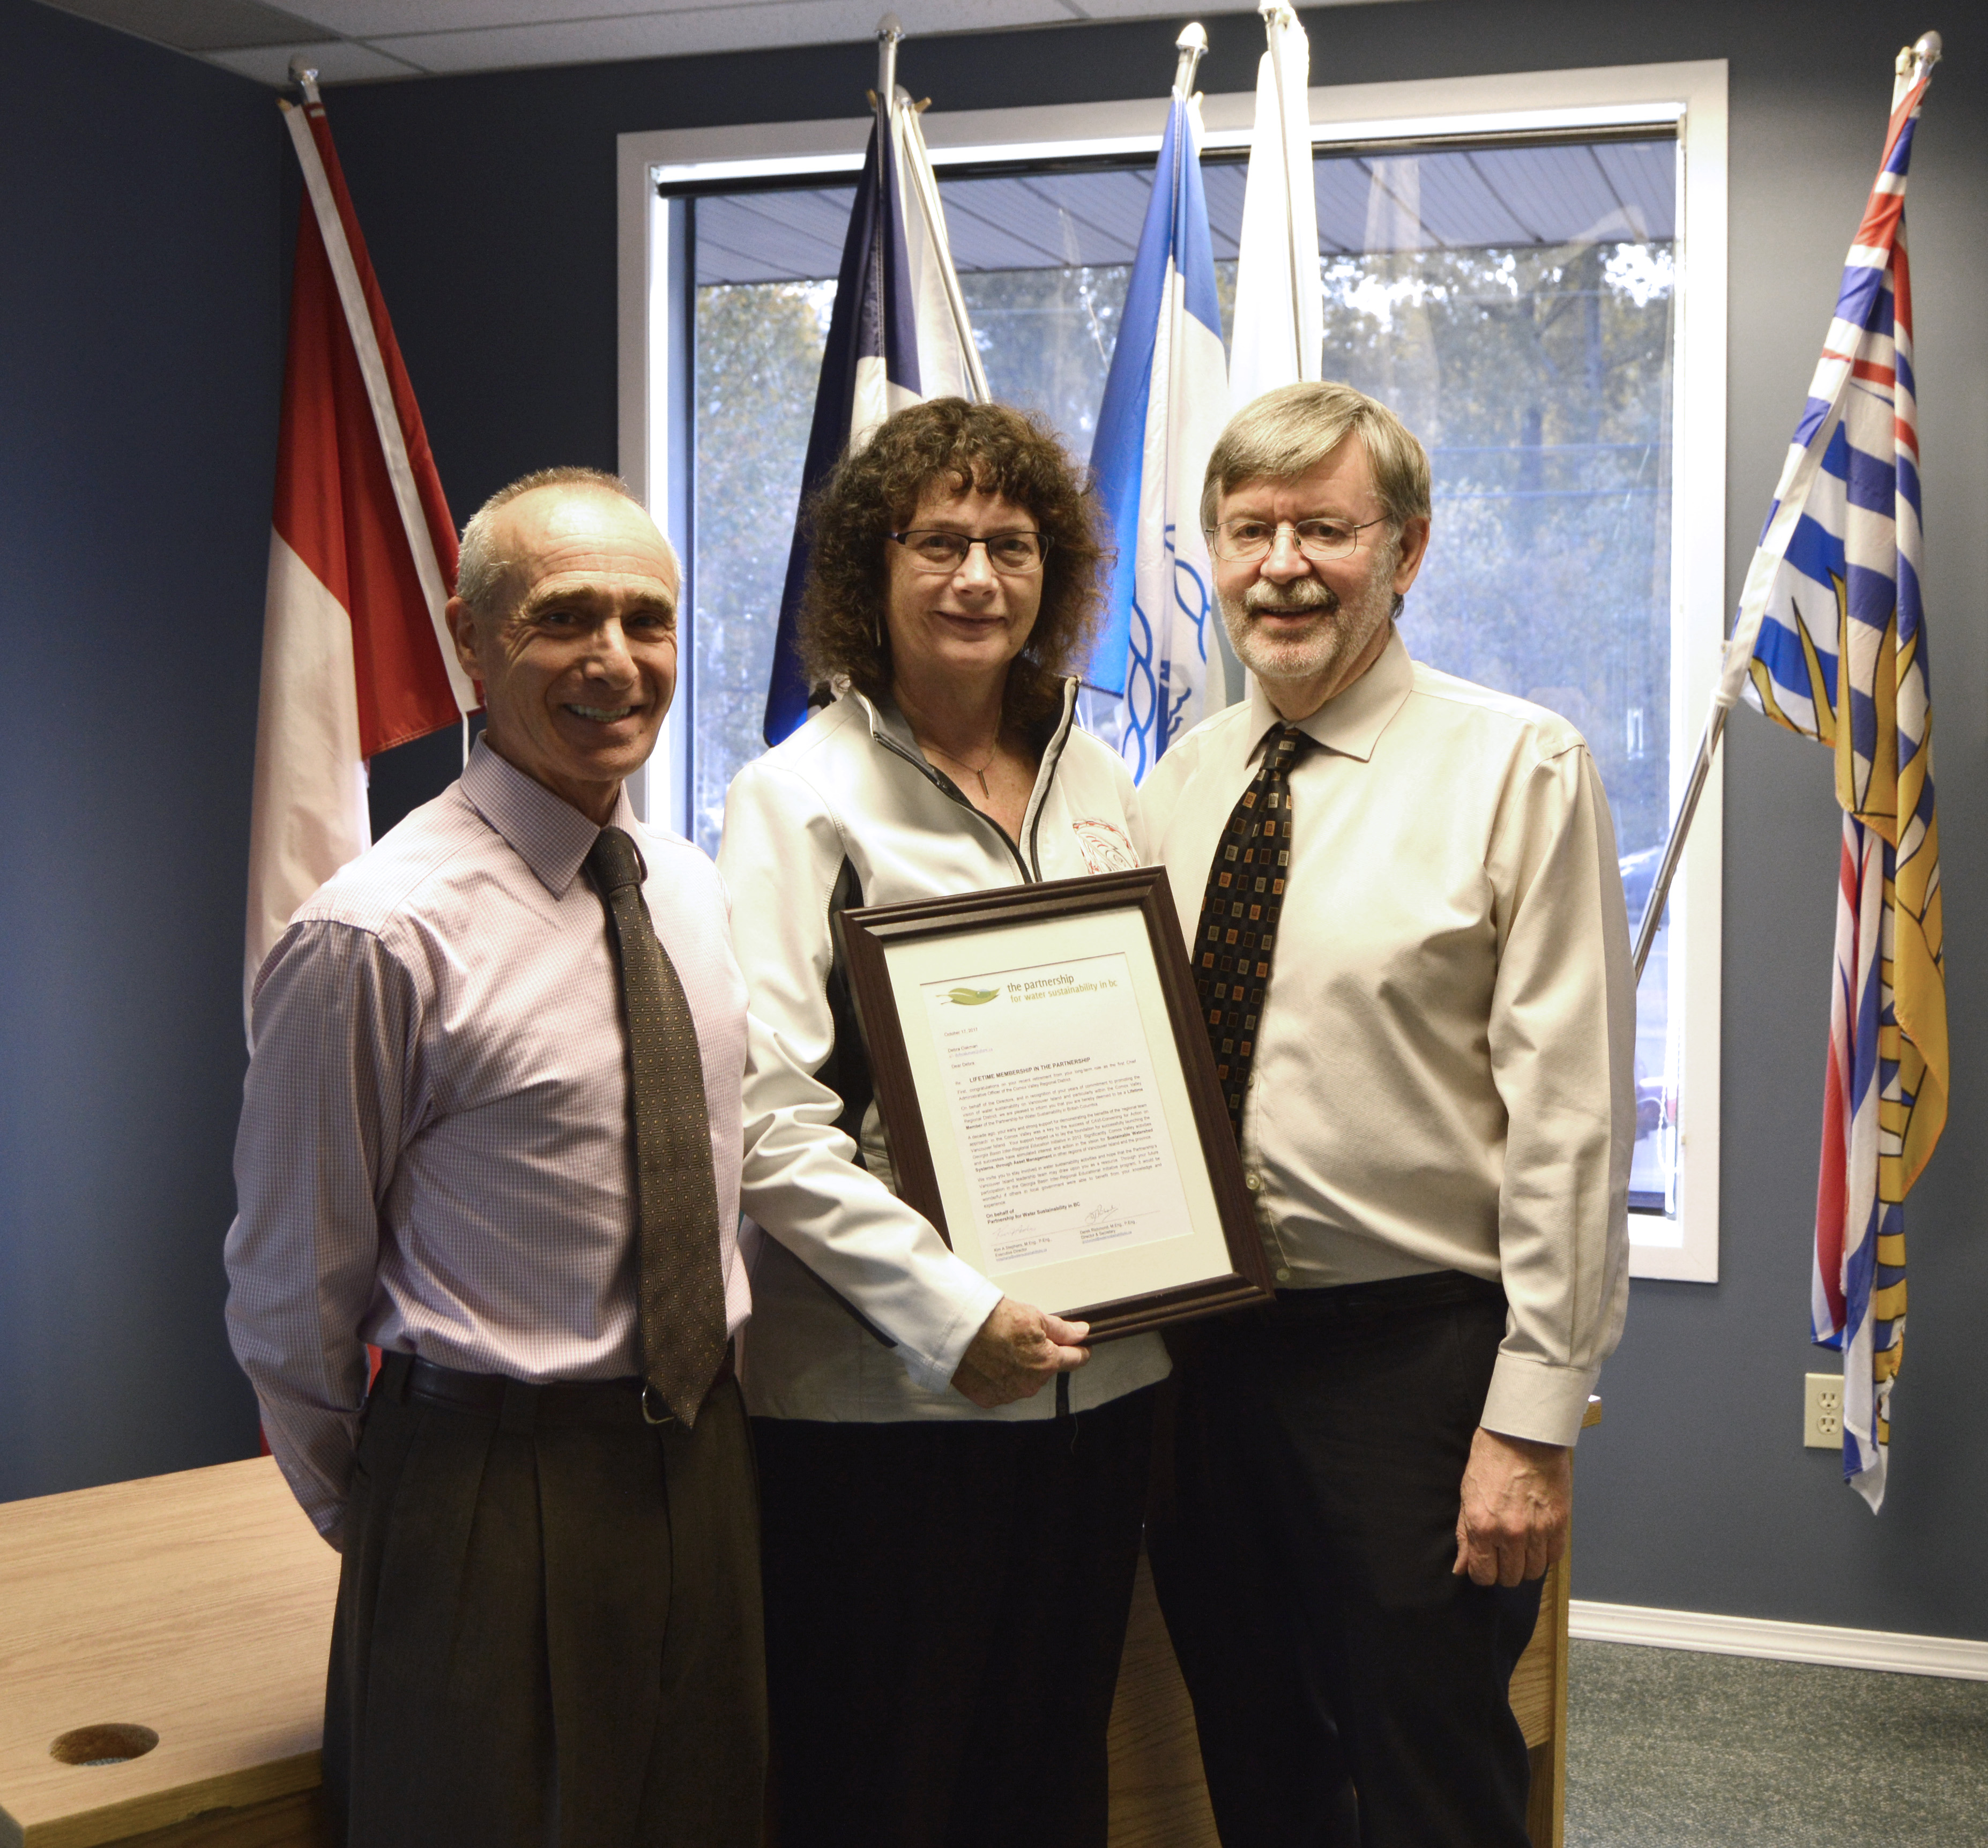 """Derek Richmond (Director & CAVI Past-Chair) and Kim Stephens (Executive Director) co-presented a framed copy of the """"letter of recognition"""" attesting to Debra's Lifetime Membership in the Partnership."""